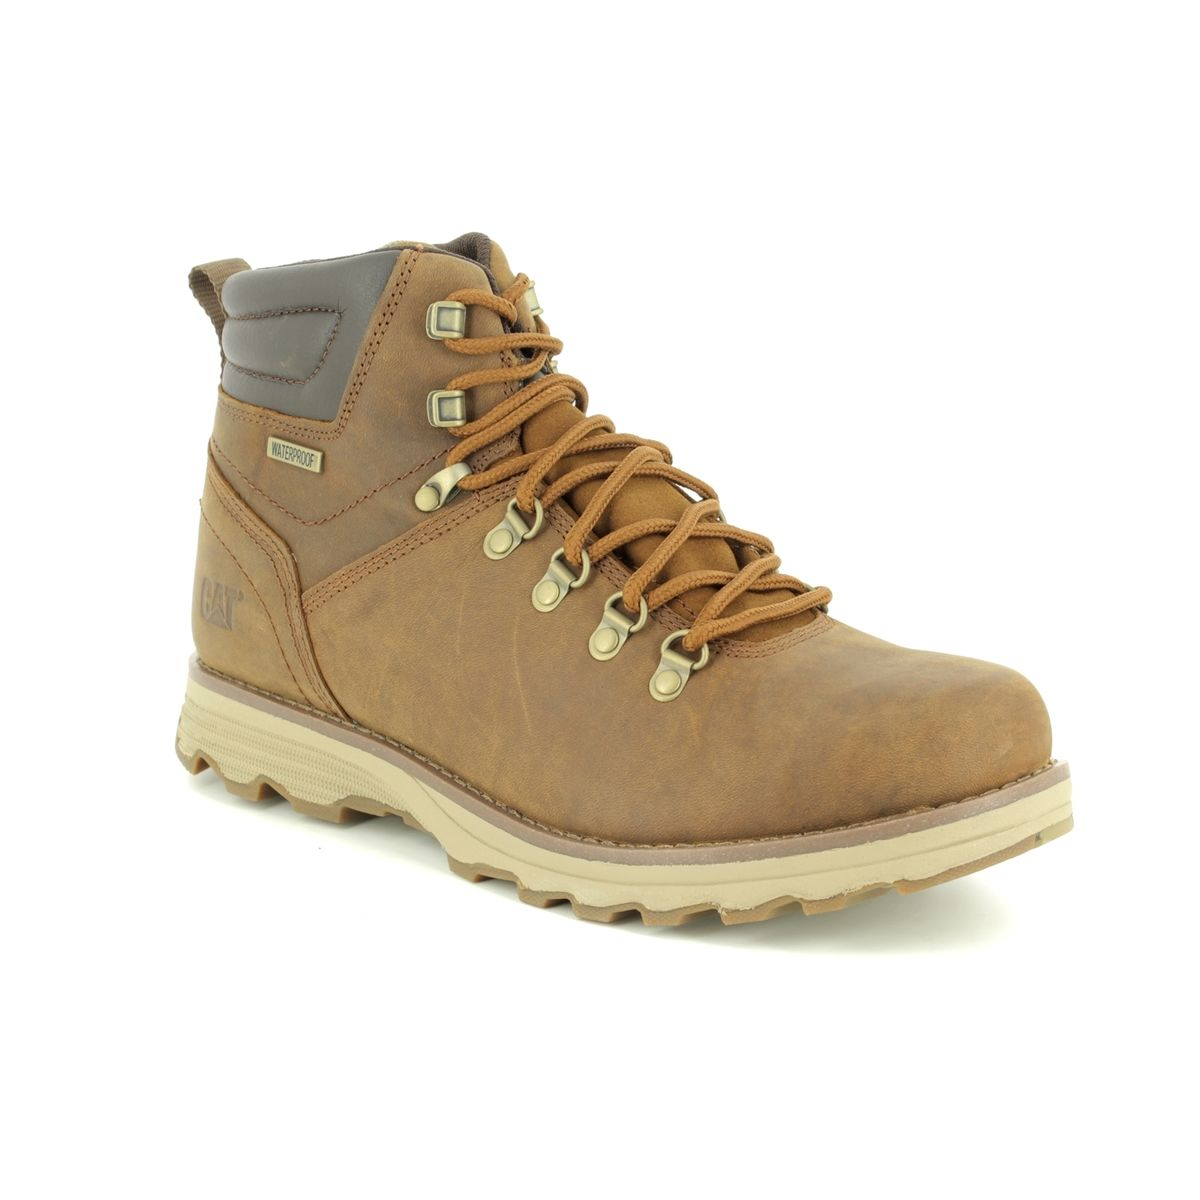 6242a7908280 CAT Boots - Brown leather - P720692  SIRE WP